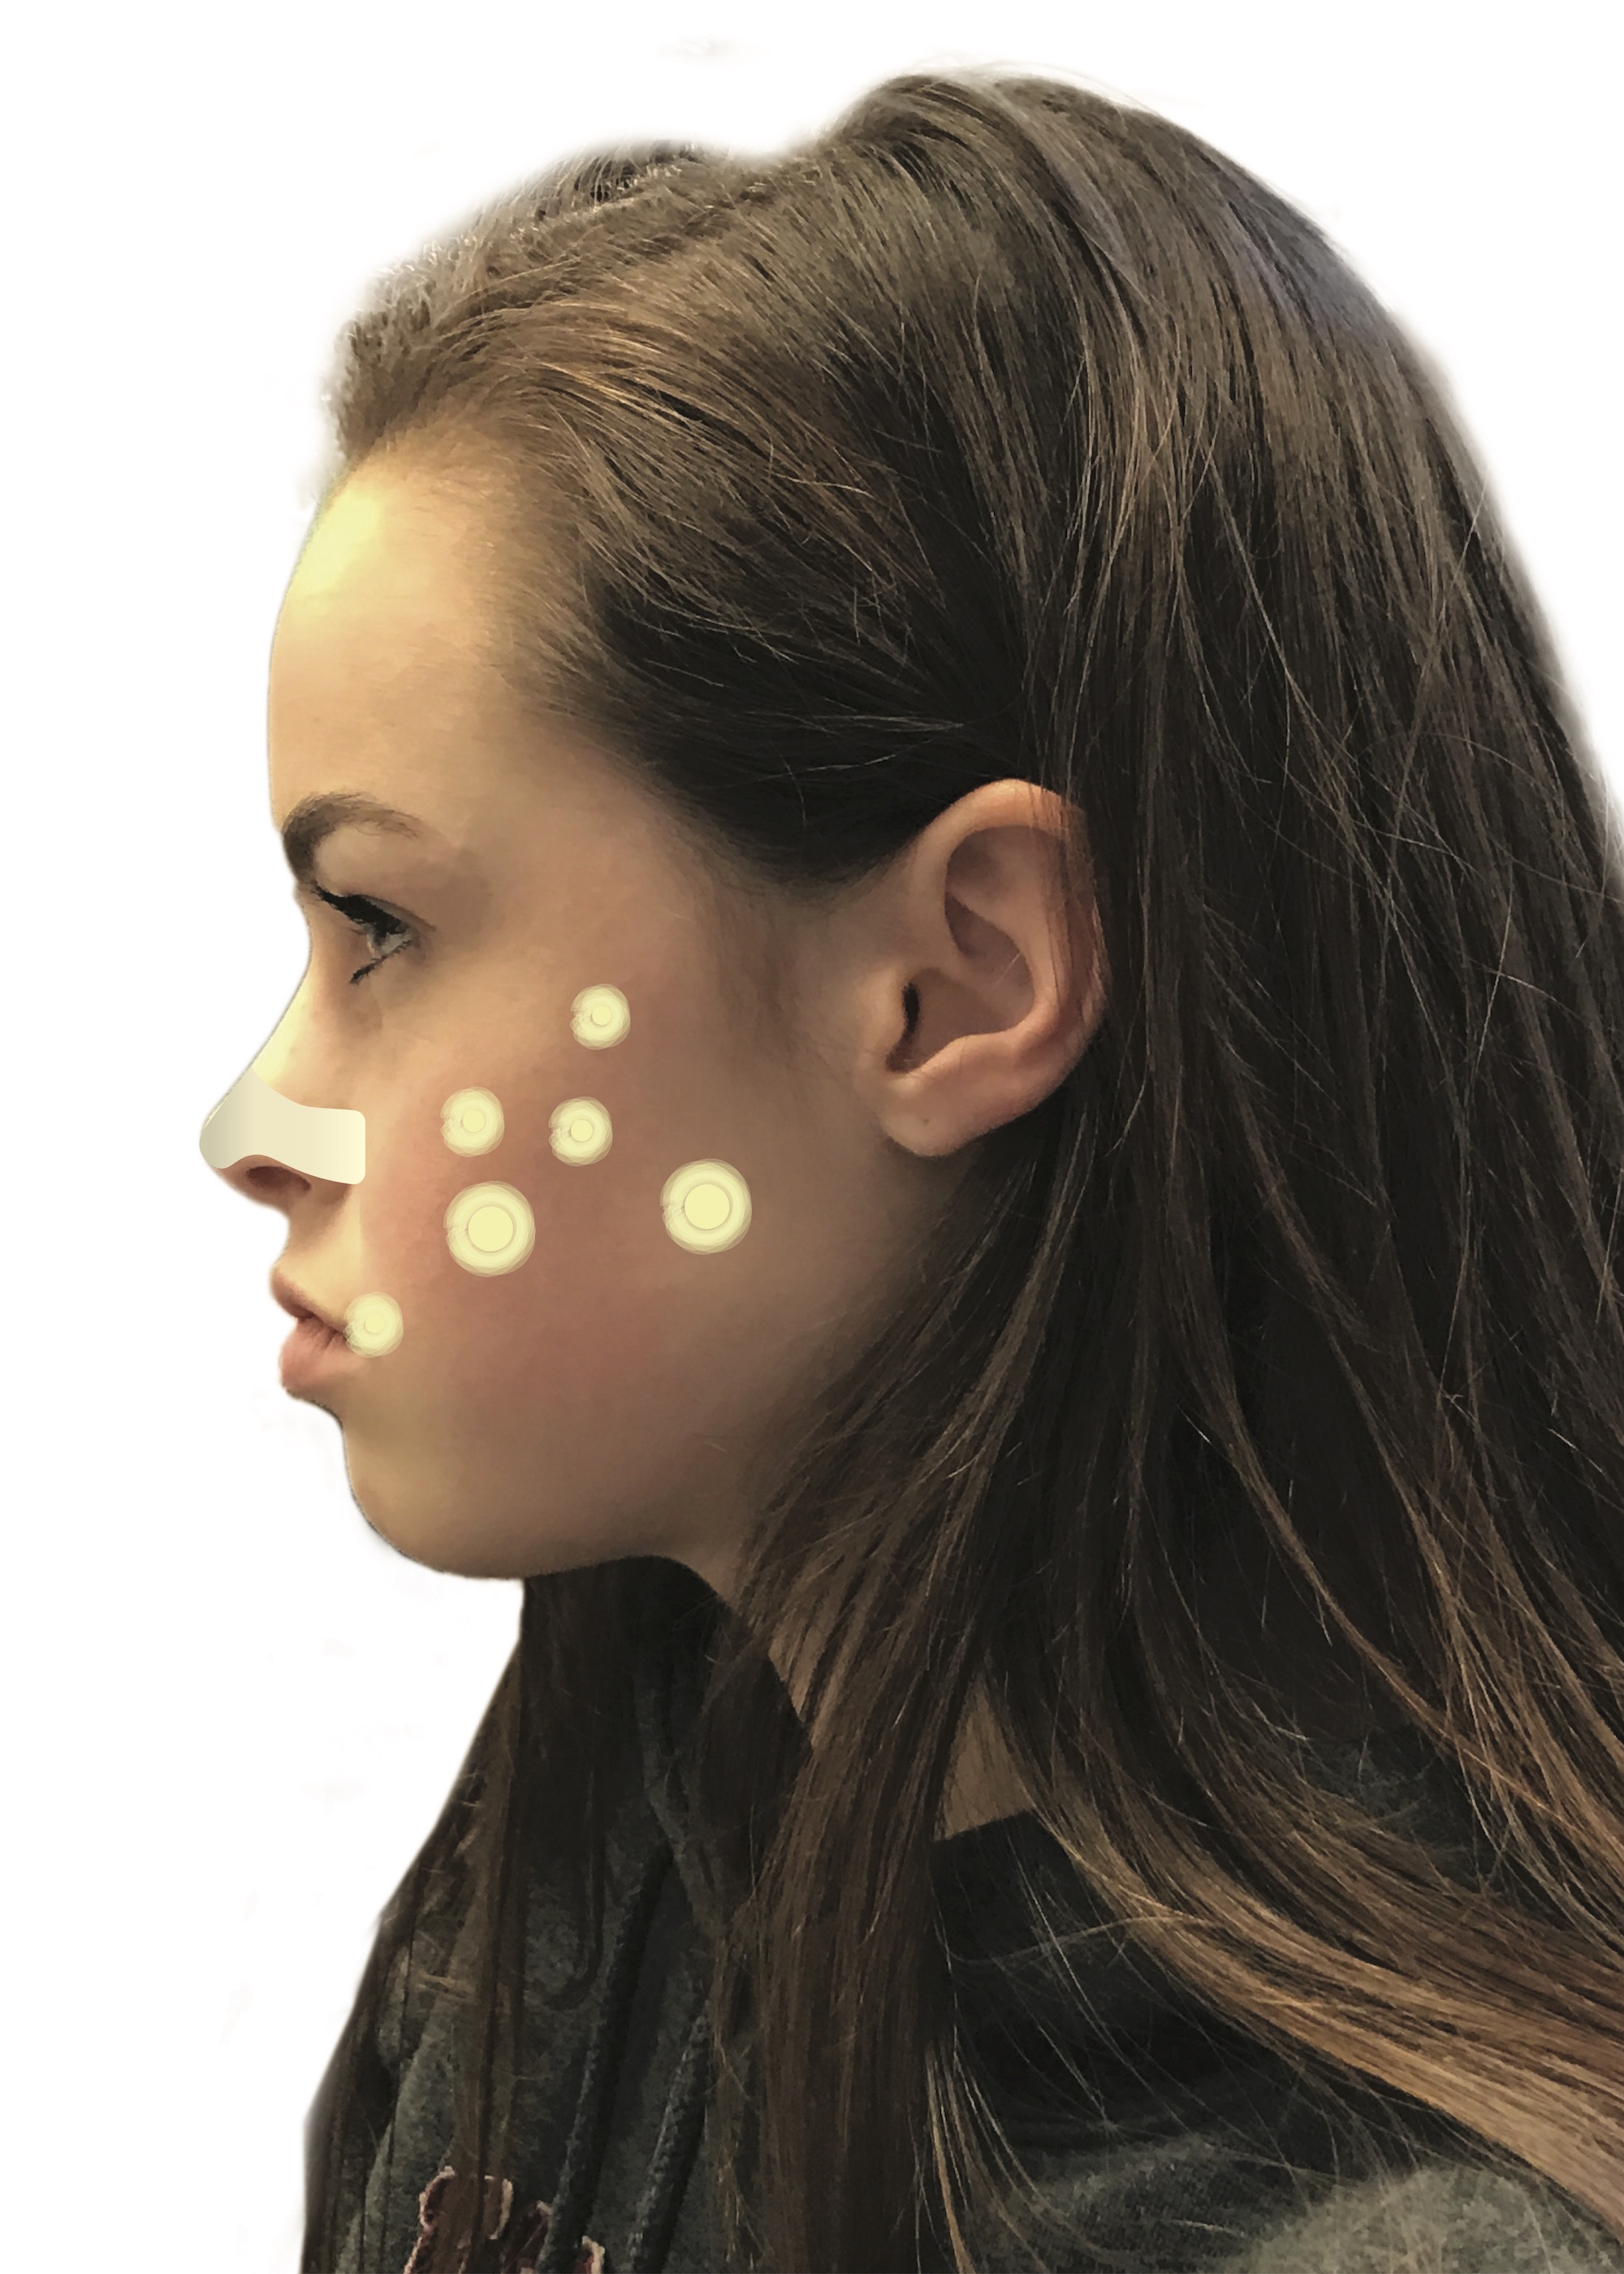 Treatment options for a variety of breakouts can range from over-the-counter creams and cleansers to prescription oral medication that sometimes requires supplementary medication such as oral contraception